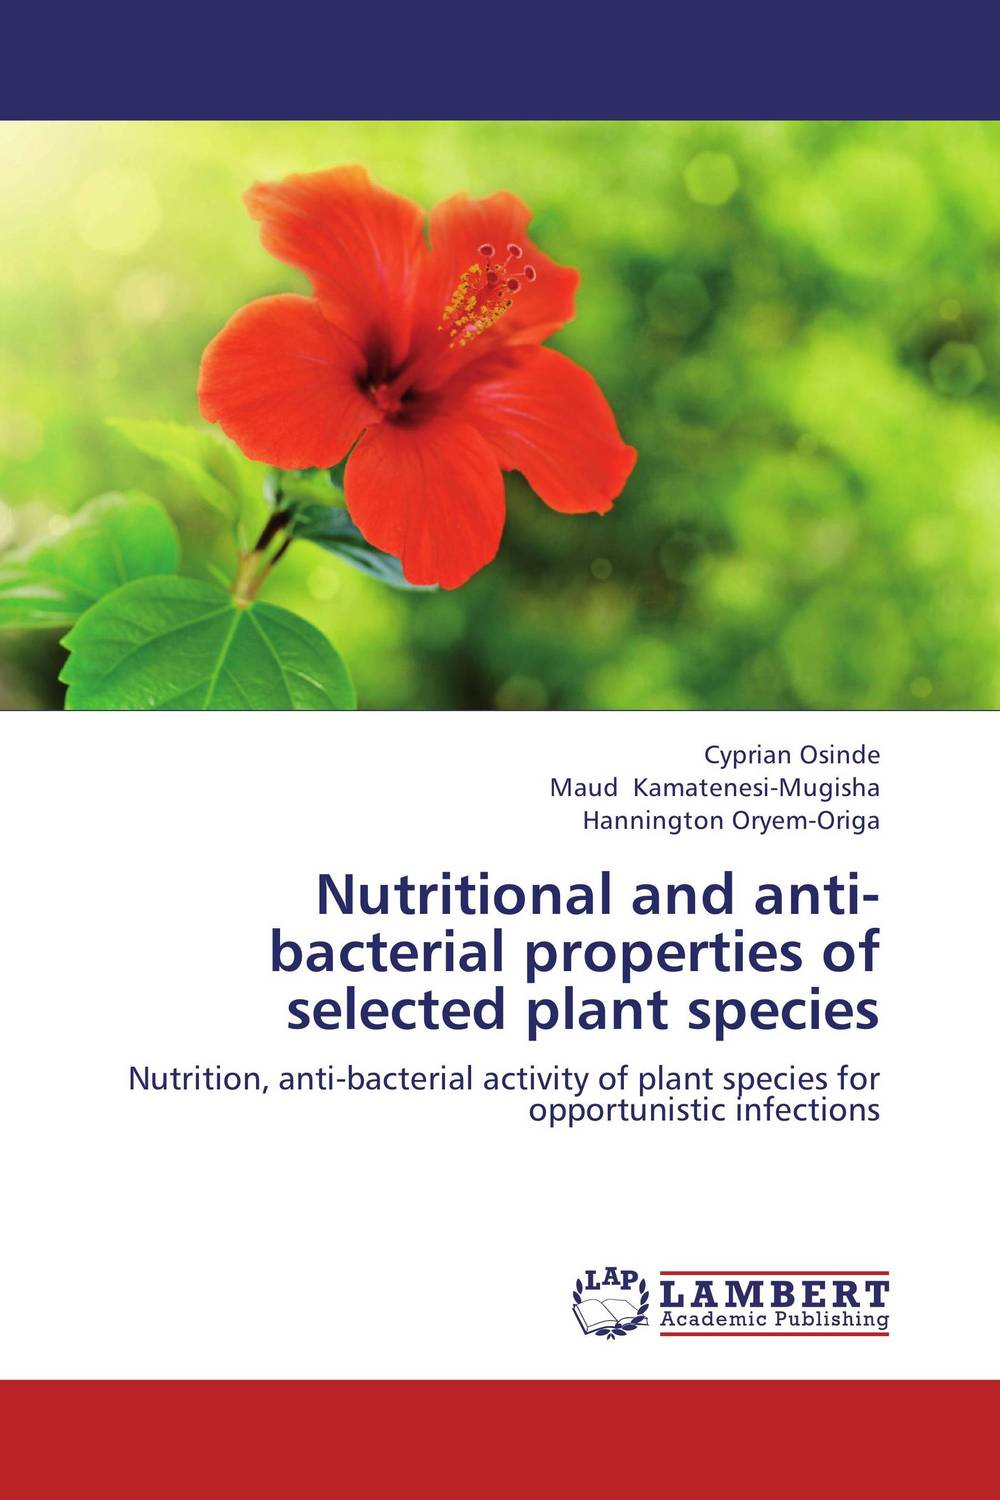 Nutritional and anti-bacterial properties of selected plant species analysis of bacterial colonization on gypsum casts